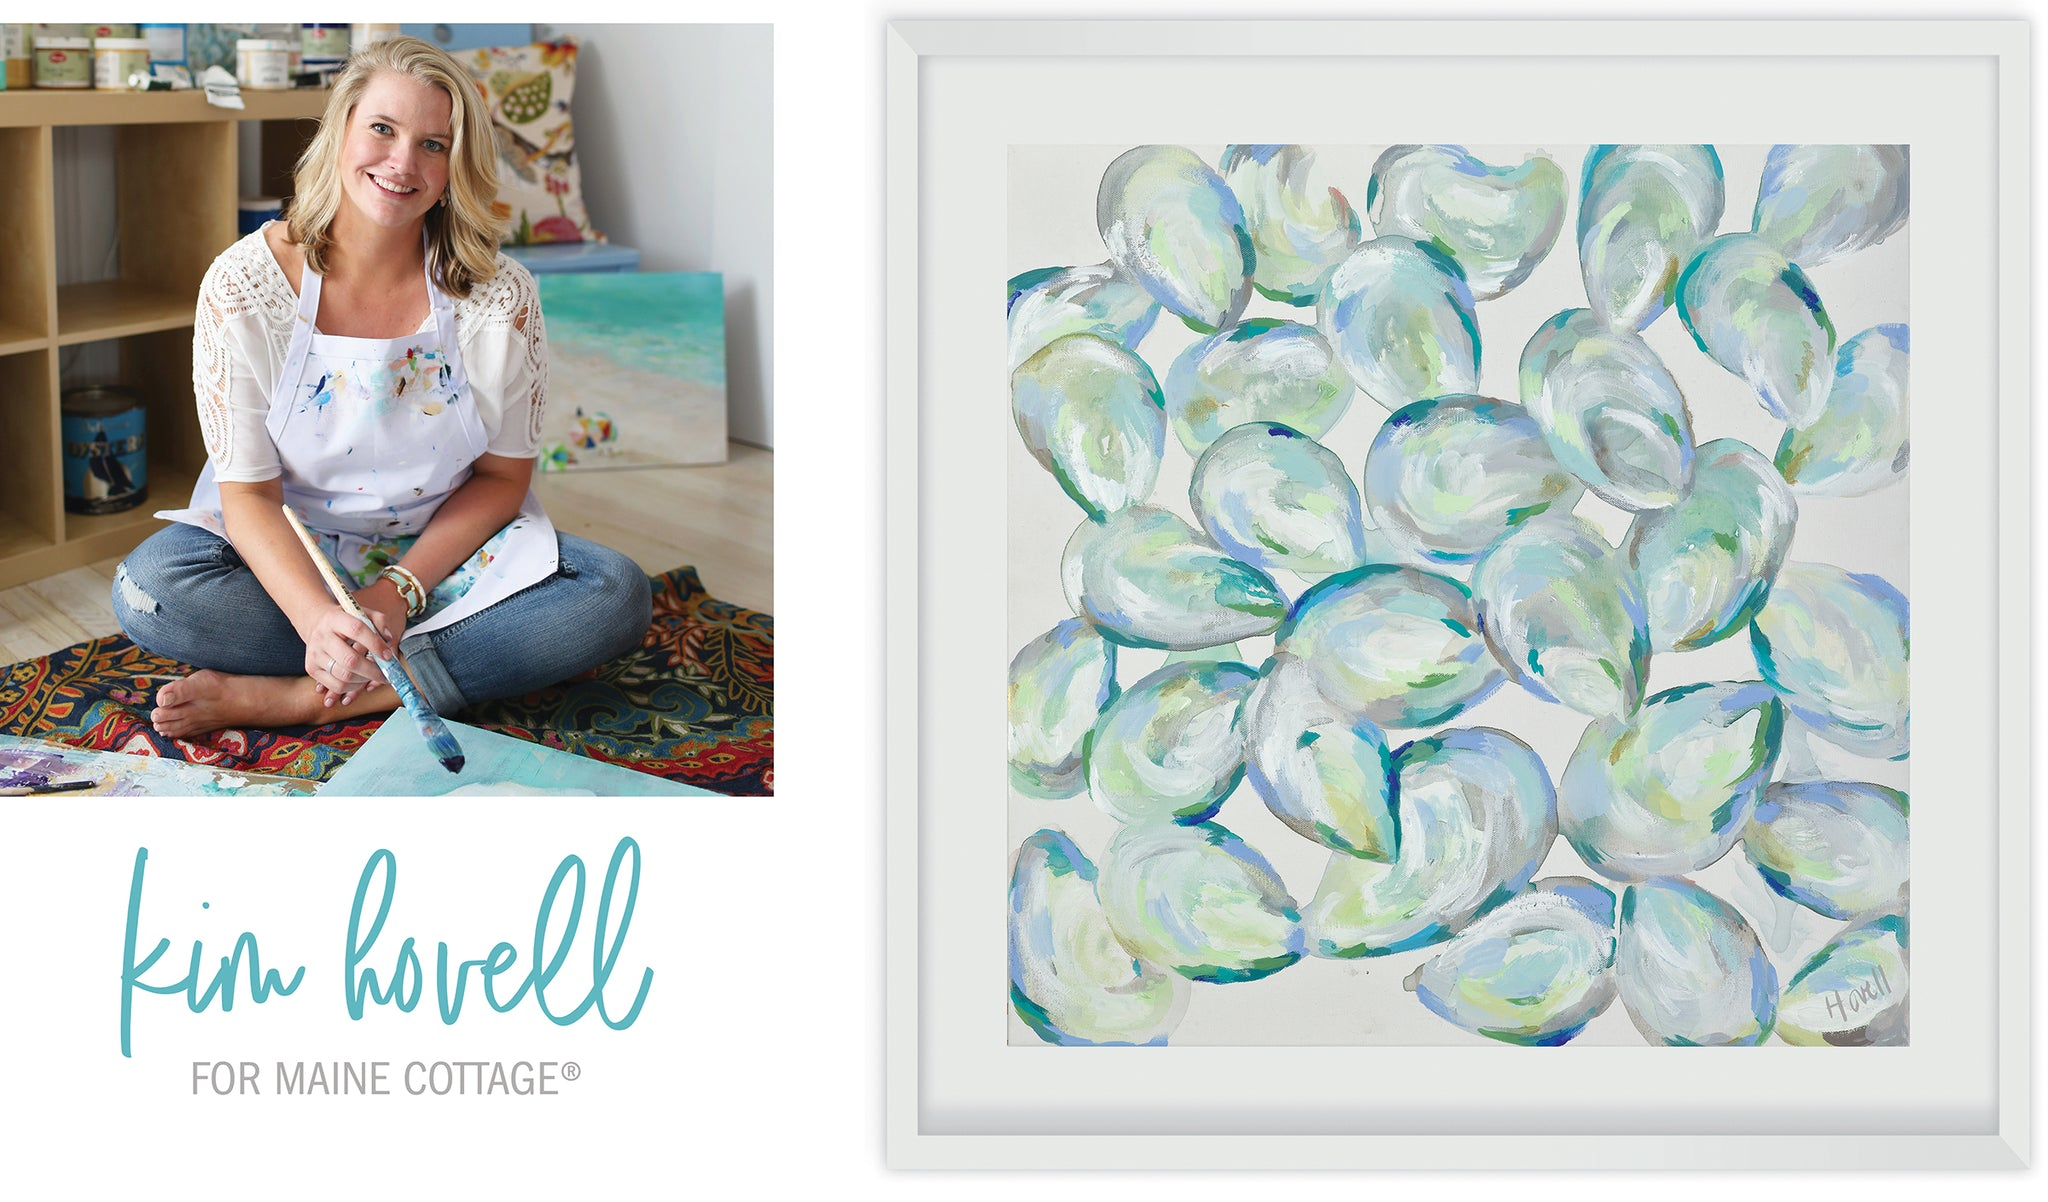 Kim Hovell Paintings for Maine Cottage